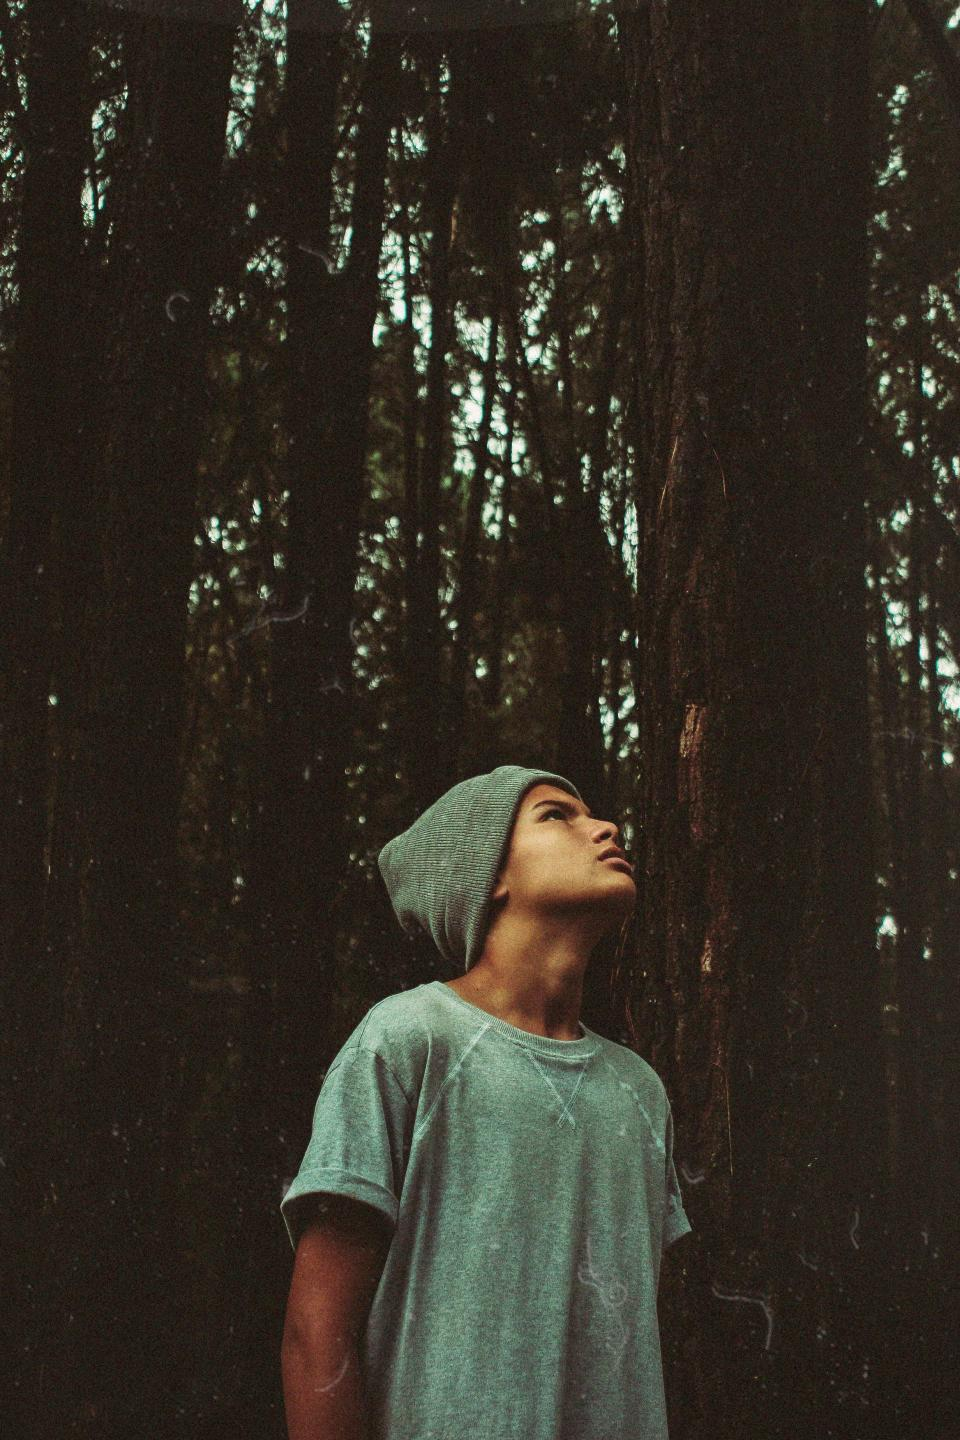 man, guy, beanie, trees, forest, nature, model, fashion, looking, up, grey